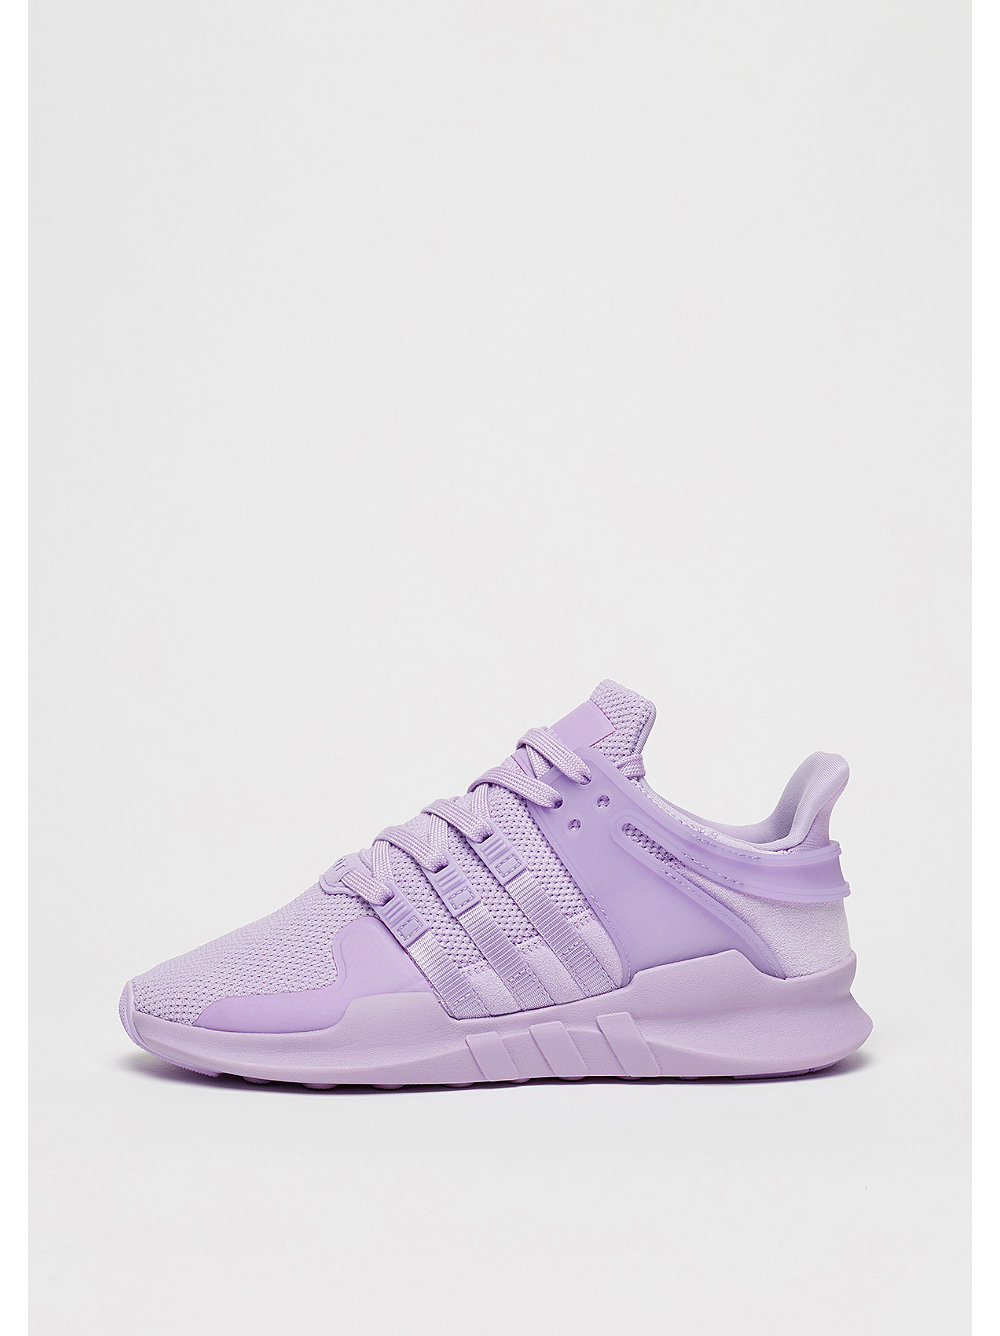 adidas EQT Support ADV purple glow